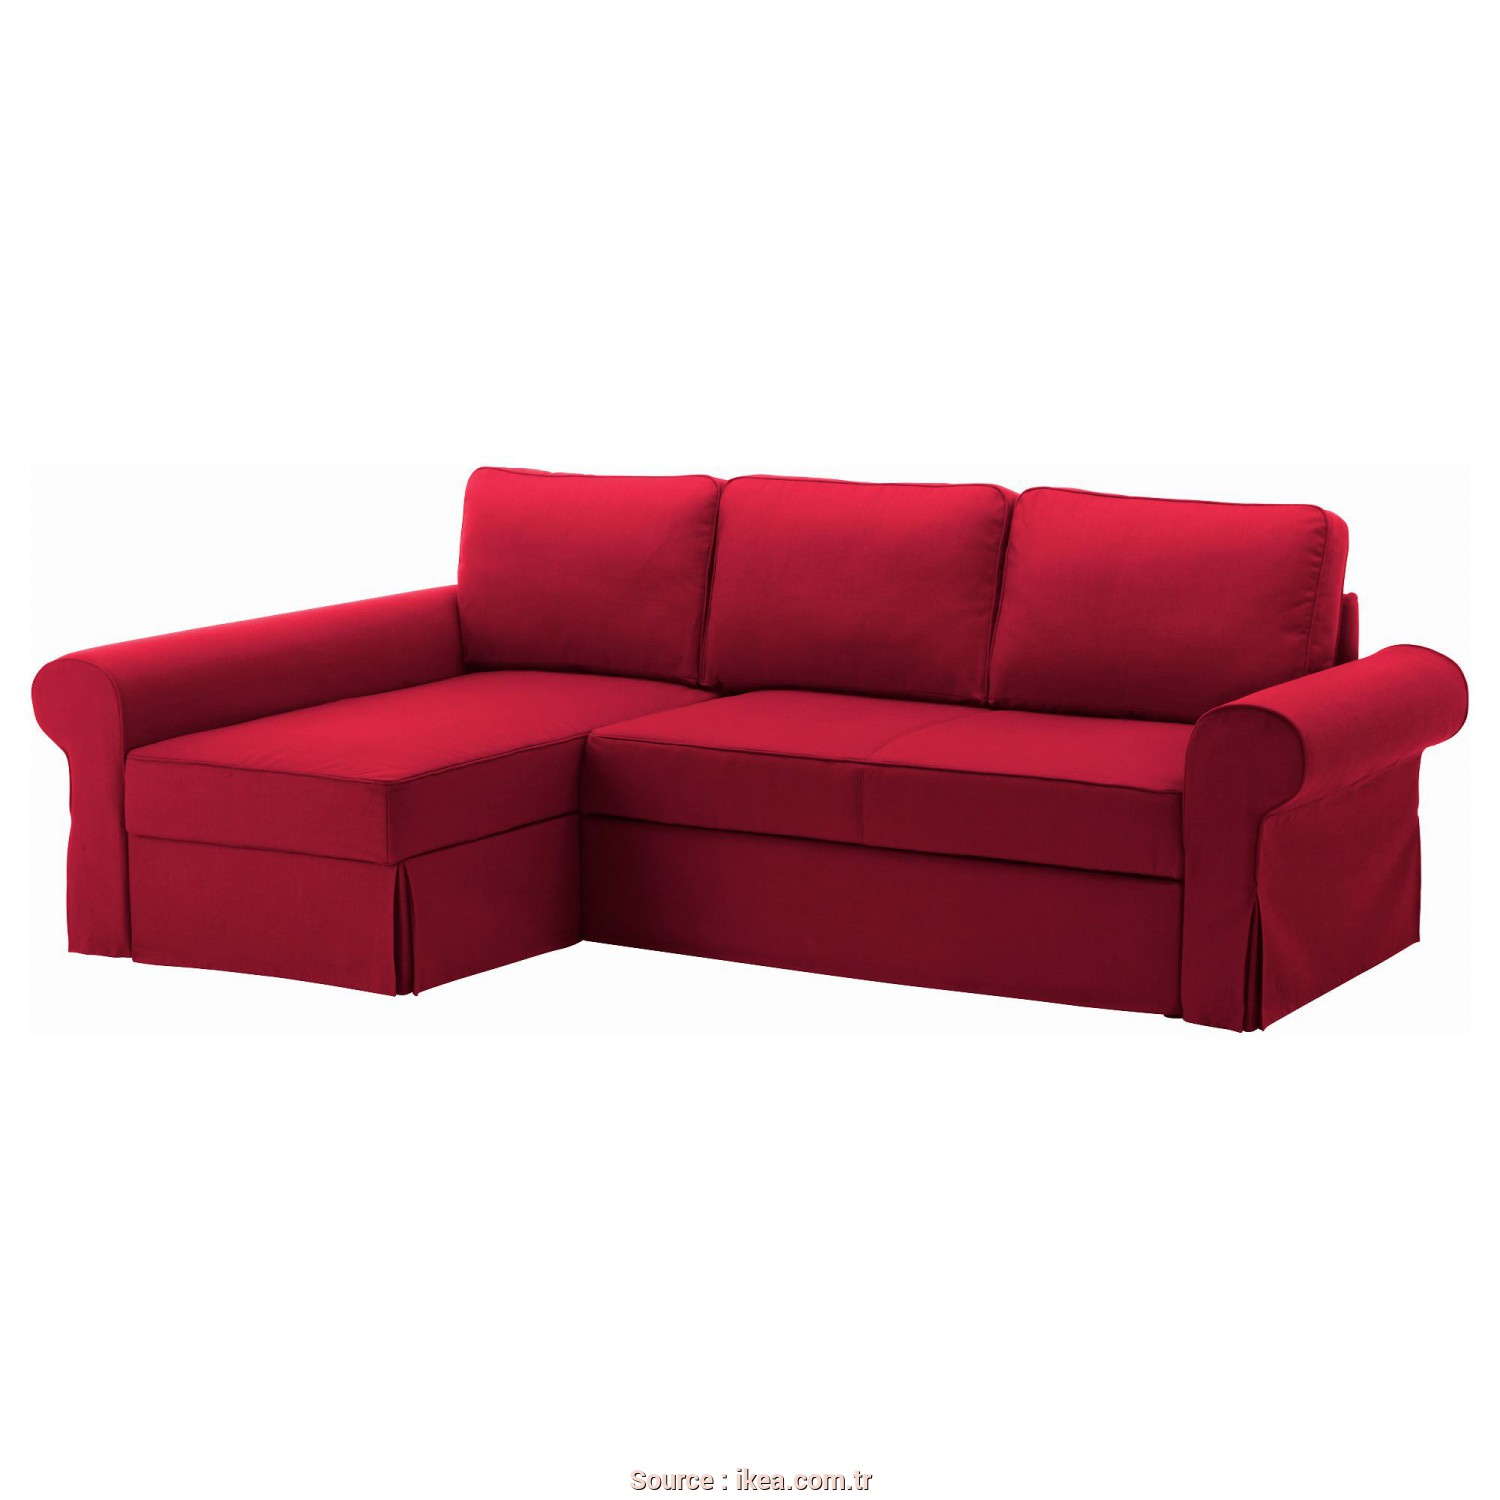 Vilasund Bettsofa Ikea, Ideale BACKABRO/MARIEBY 2-Seat Sofa, With Chaise Longue Nordvalla Red, IKEA Living Room